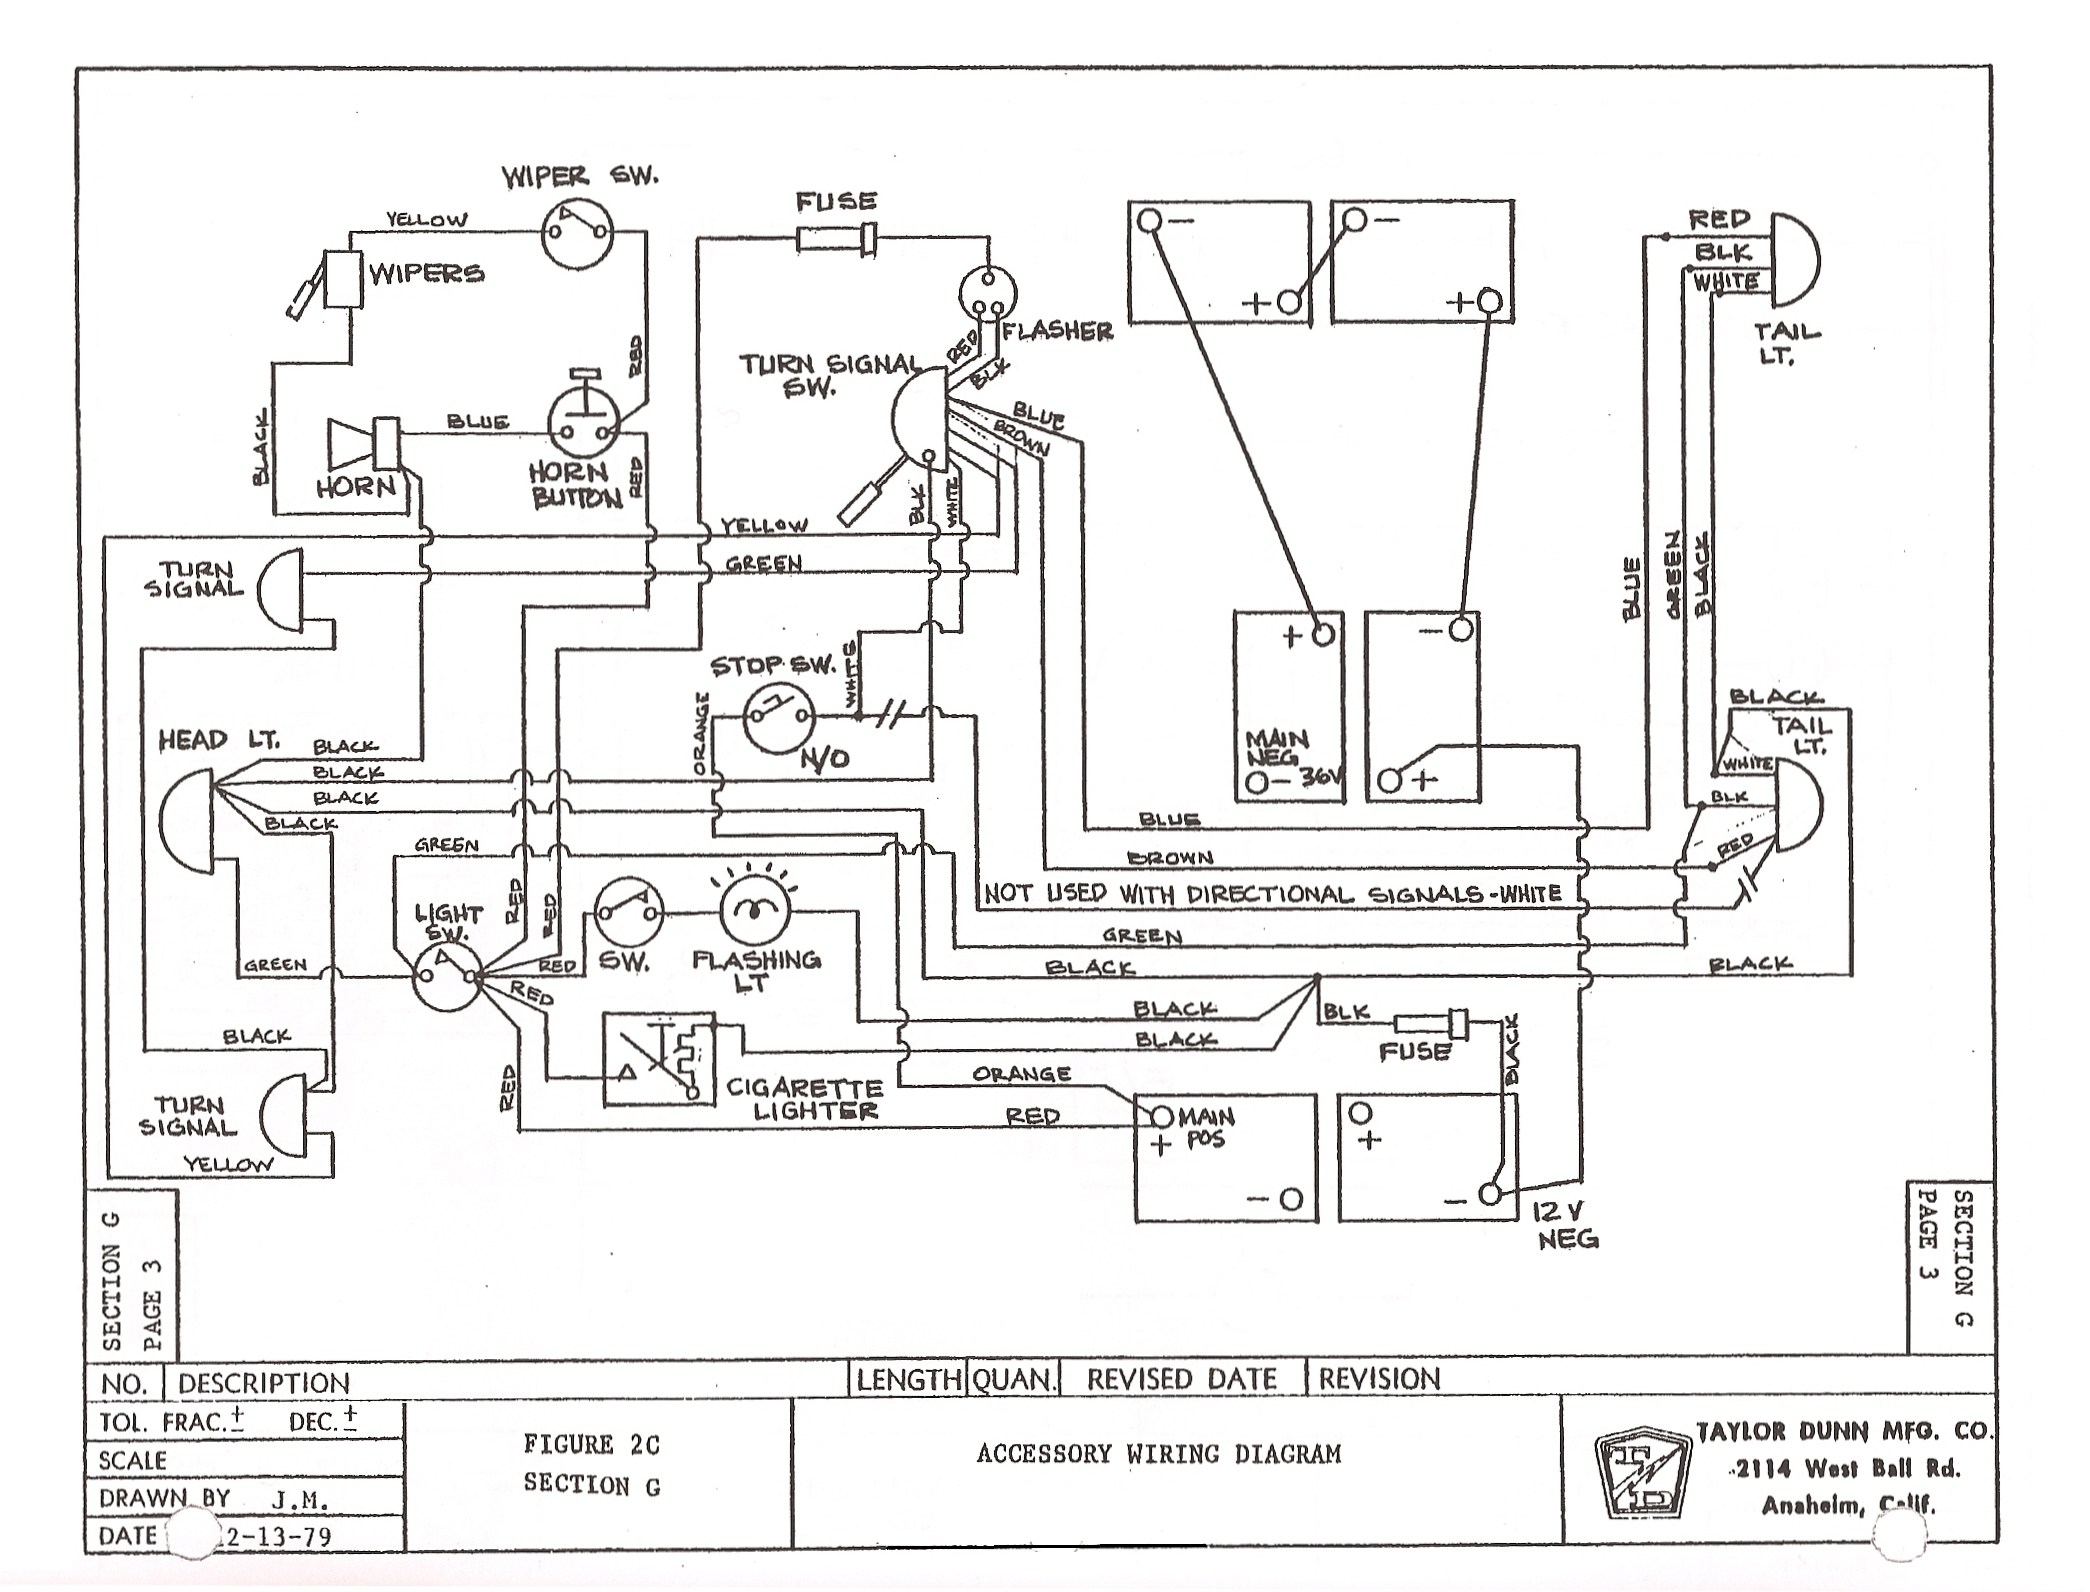 taylor dunn ss 536 wiring diagram best wiring library Taylor Parts Manual taylor dunn 36v wiring diagram data wiring diagram taylor dunn b6 10 manuals 36 volt taylor